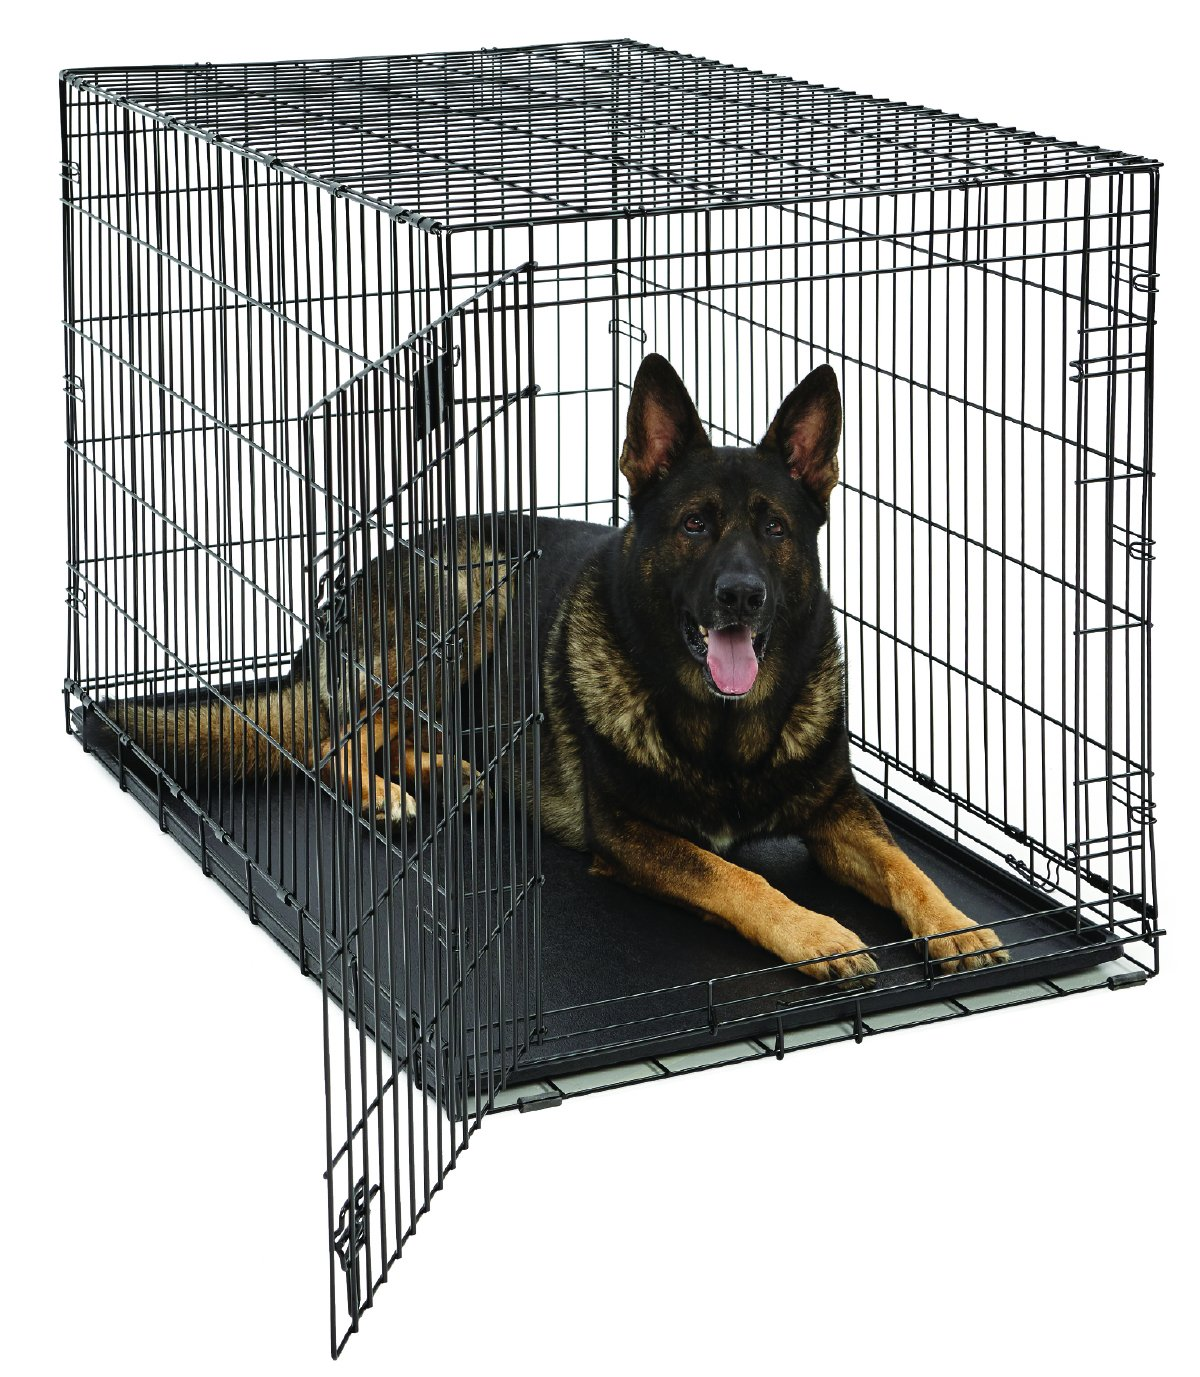 XL Dog Crate   MidWest Life Stages Folding Metal Dog Crate   Divider Panel, Floor Protecting Feet, Leak-Proof Dog Tray   48L x 30W x 33H Inches, XL Dog Breed